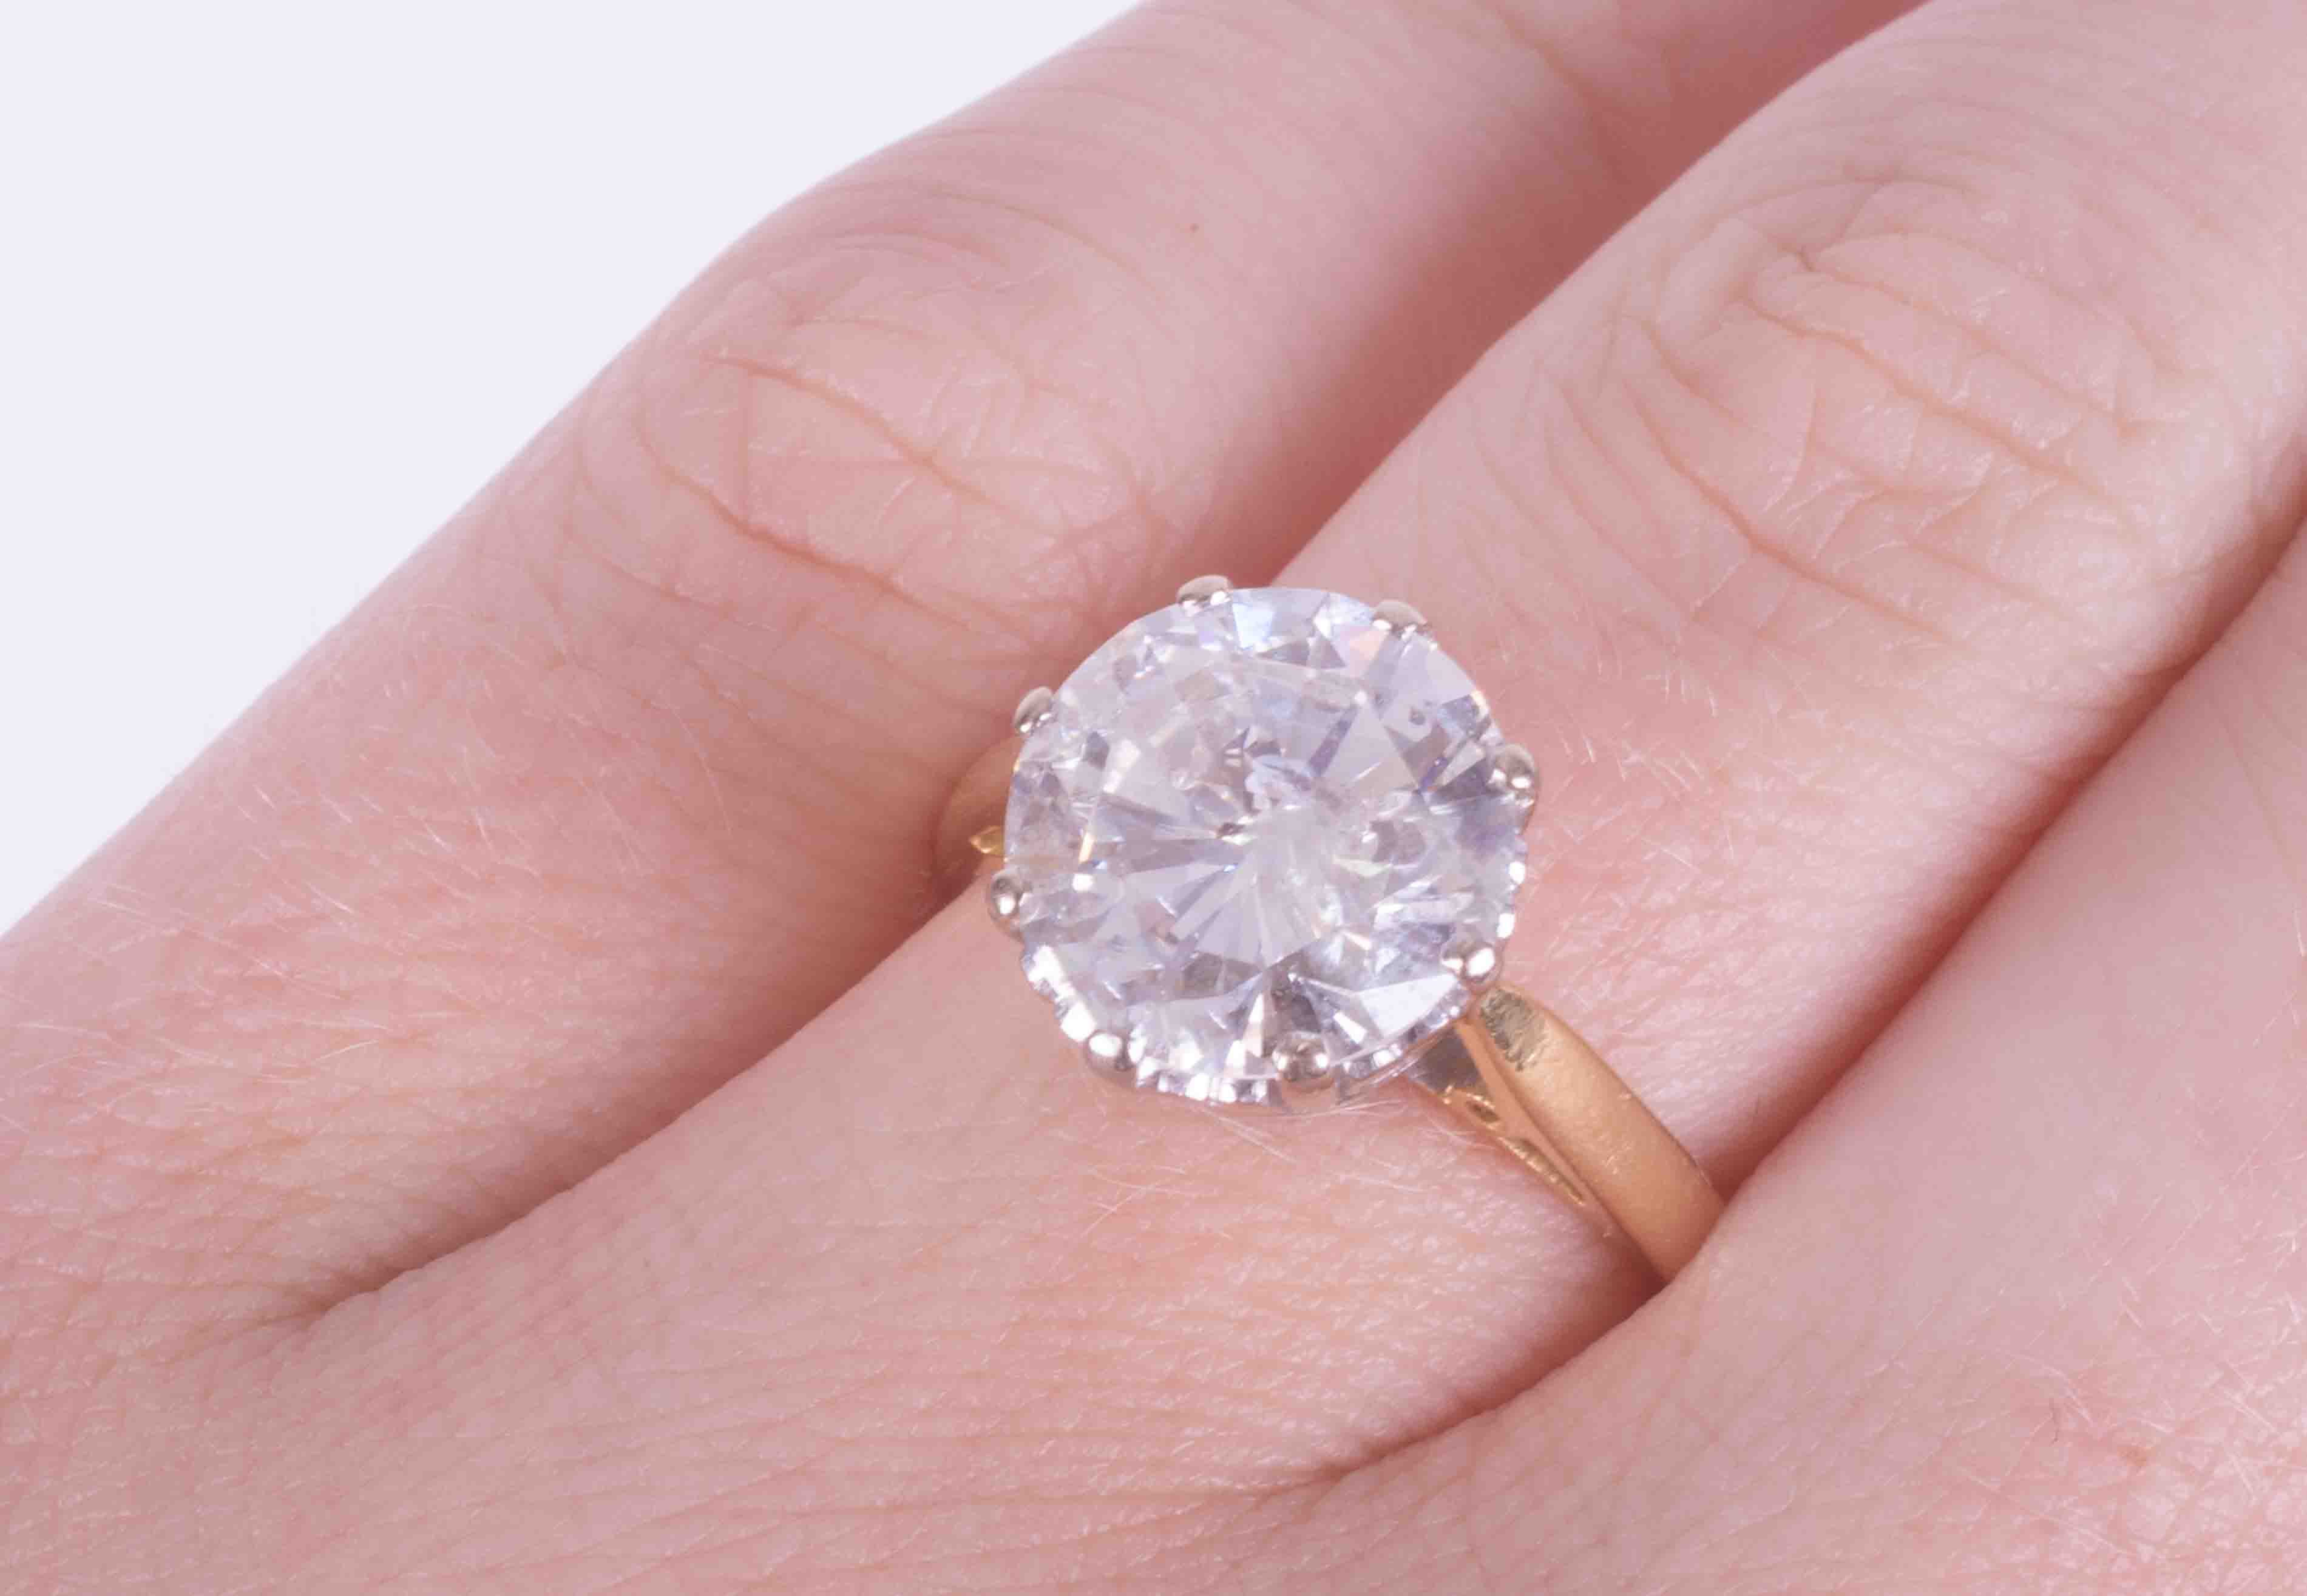 An impressive 18ct yellow & white gold diamond solitaire ring set with approx. 4.00 carats of - Image 2 of 6